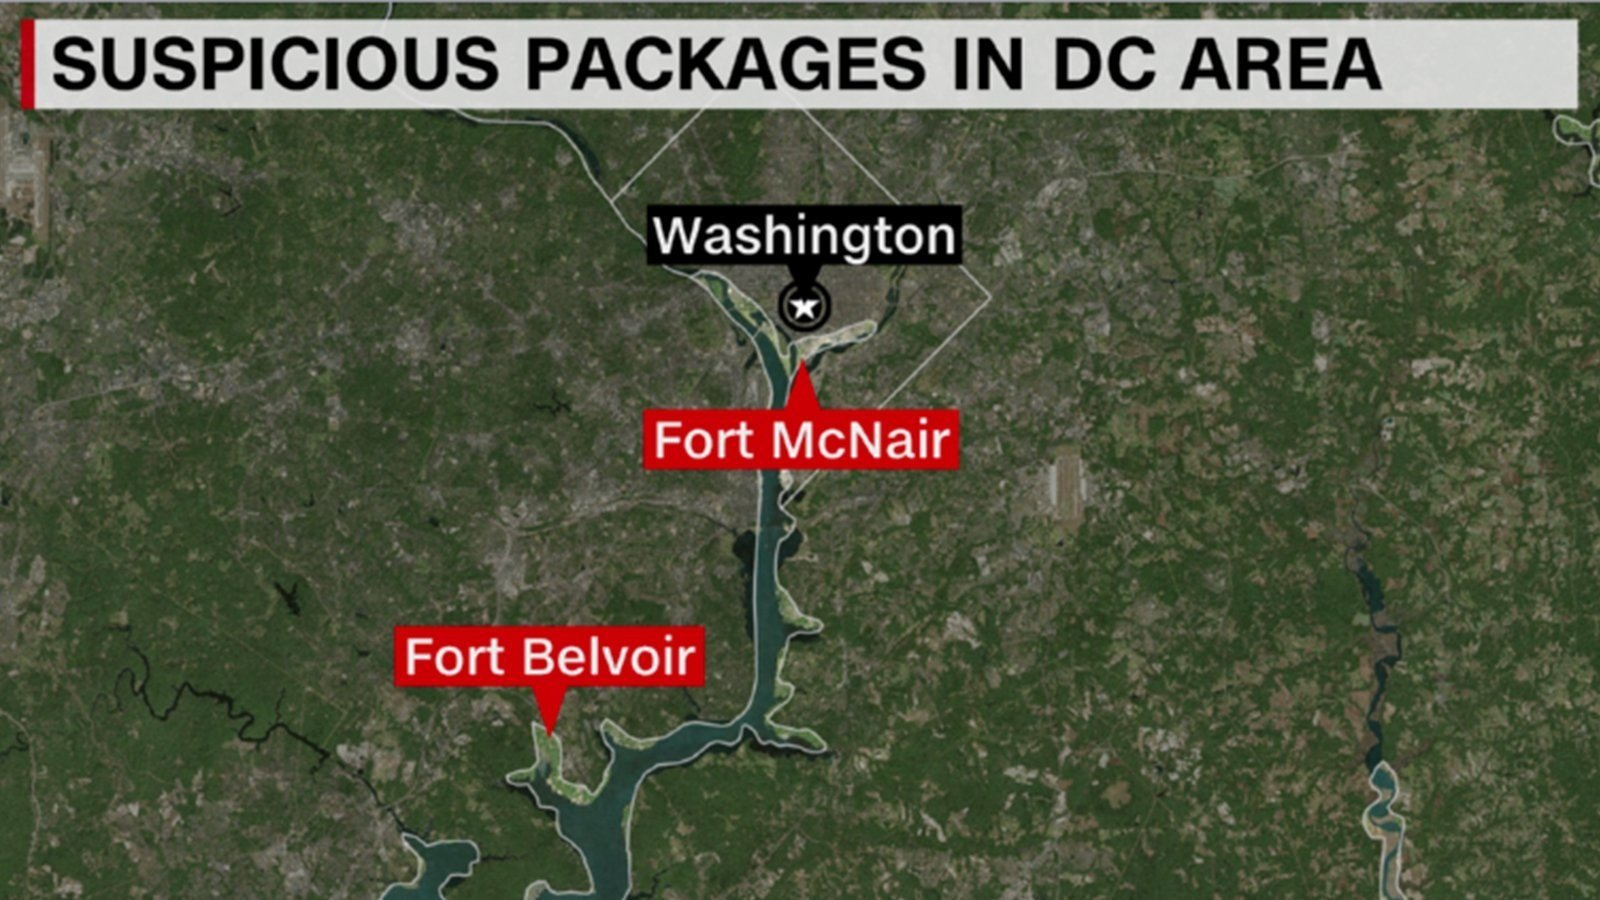 Packages with explosive material sent to military installations in DC area